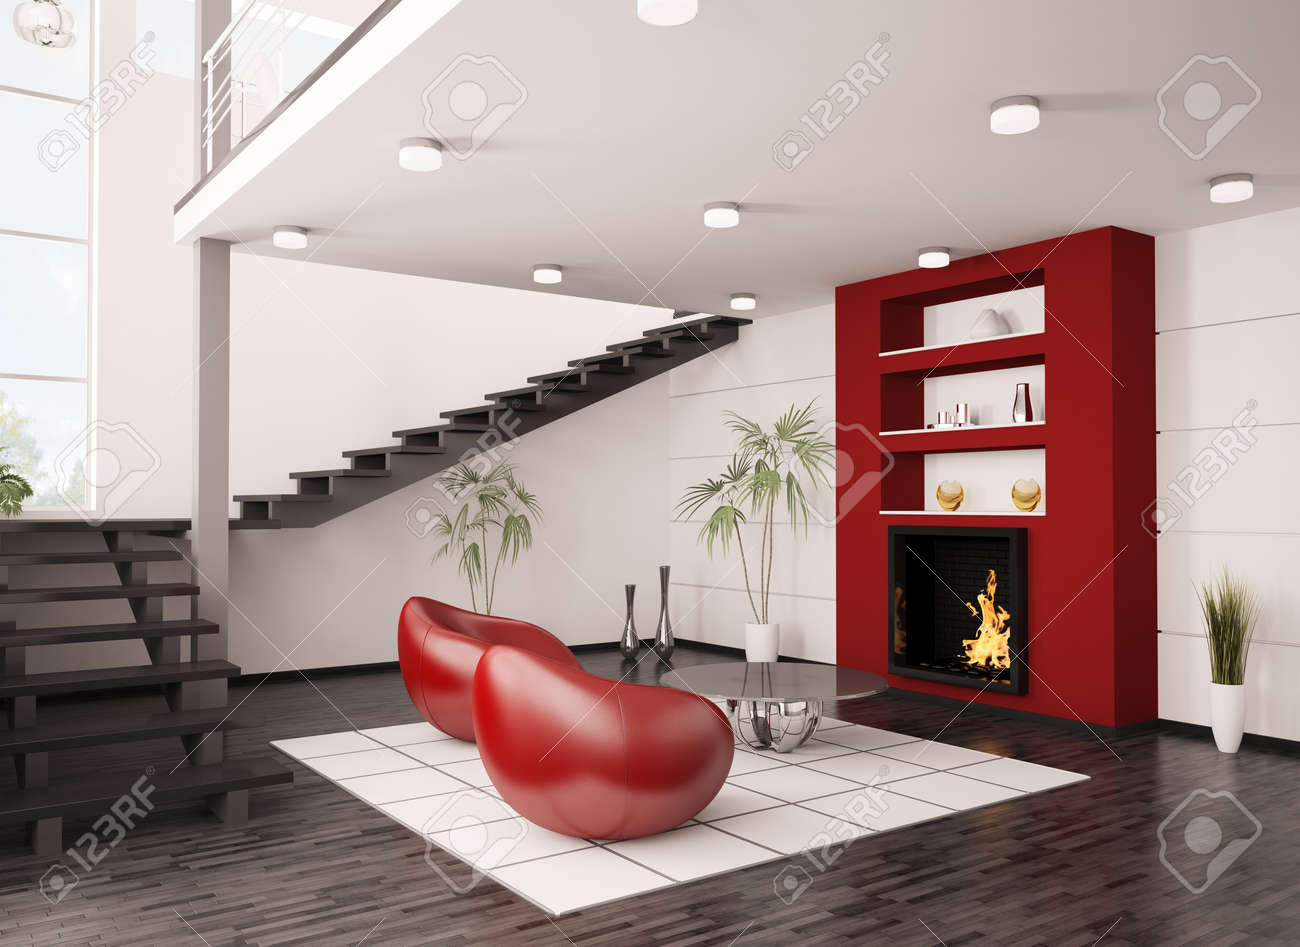 Escalier Moderne Dans Salon modern interior of living room with fireplace and staircase 3d..